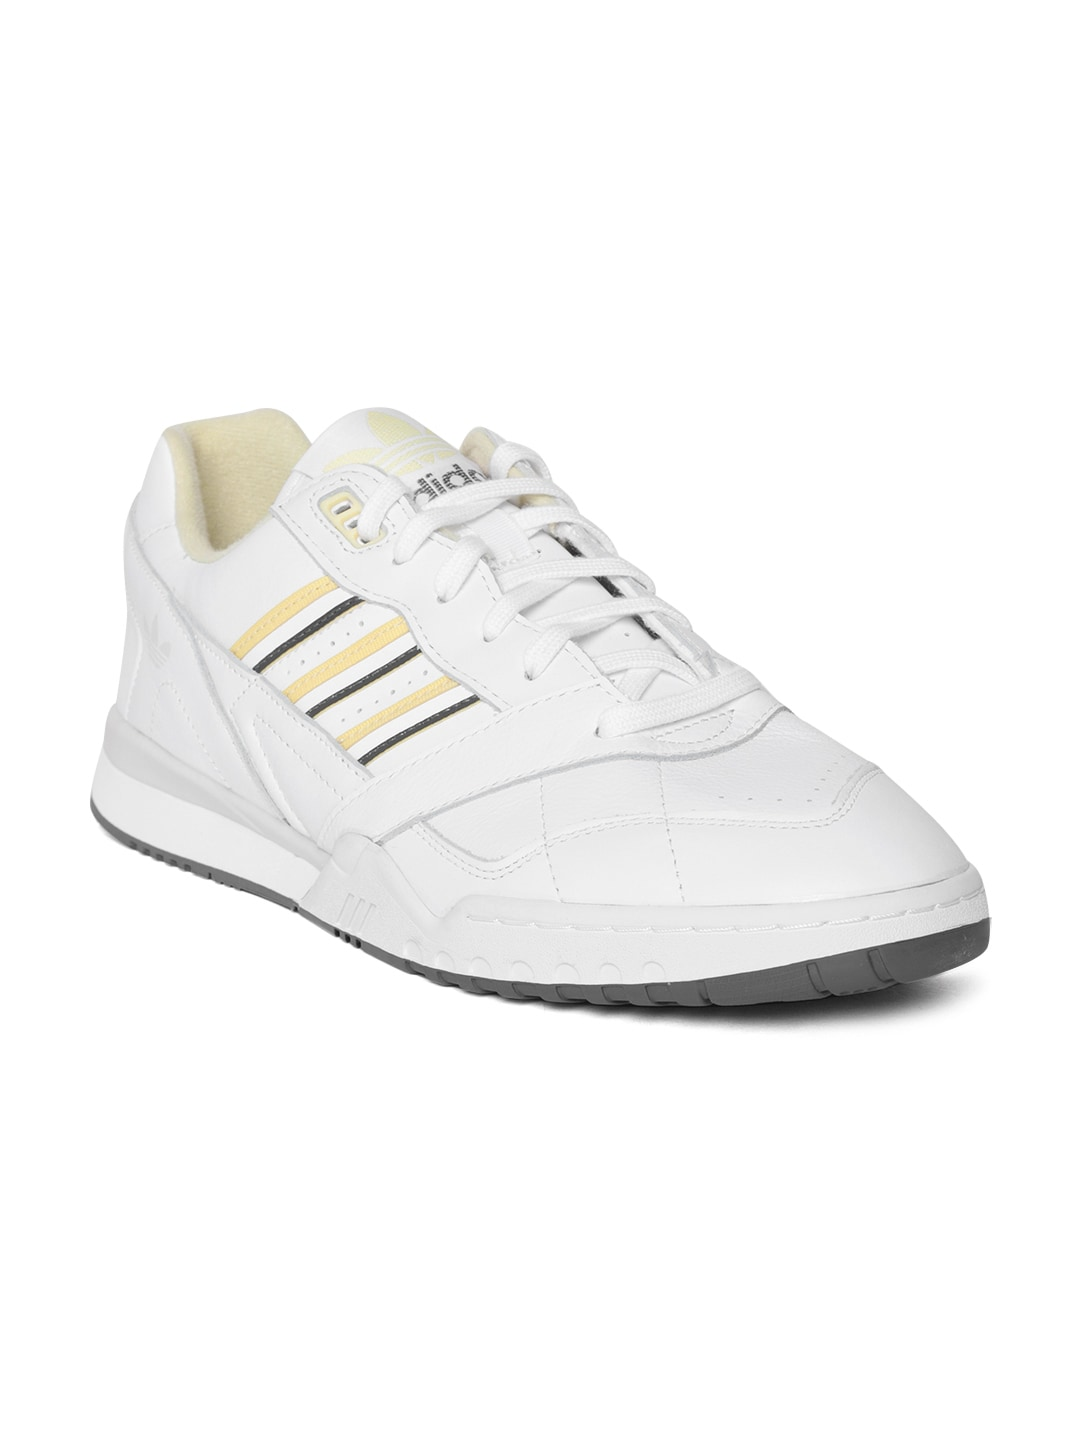 8211d17aa125a Adidas Shoes - Buy Adidas Shoes for Men   Women Online - Myntra